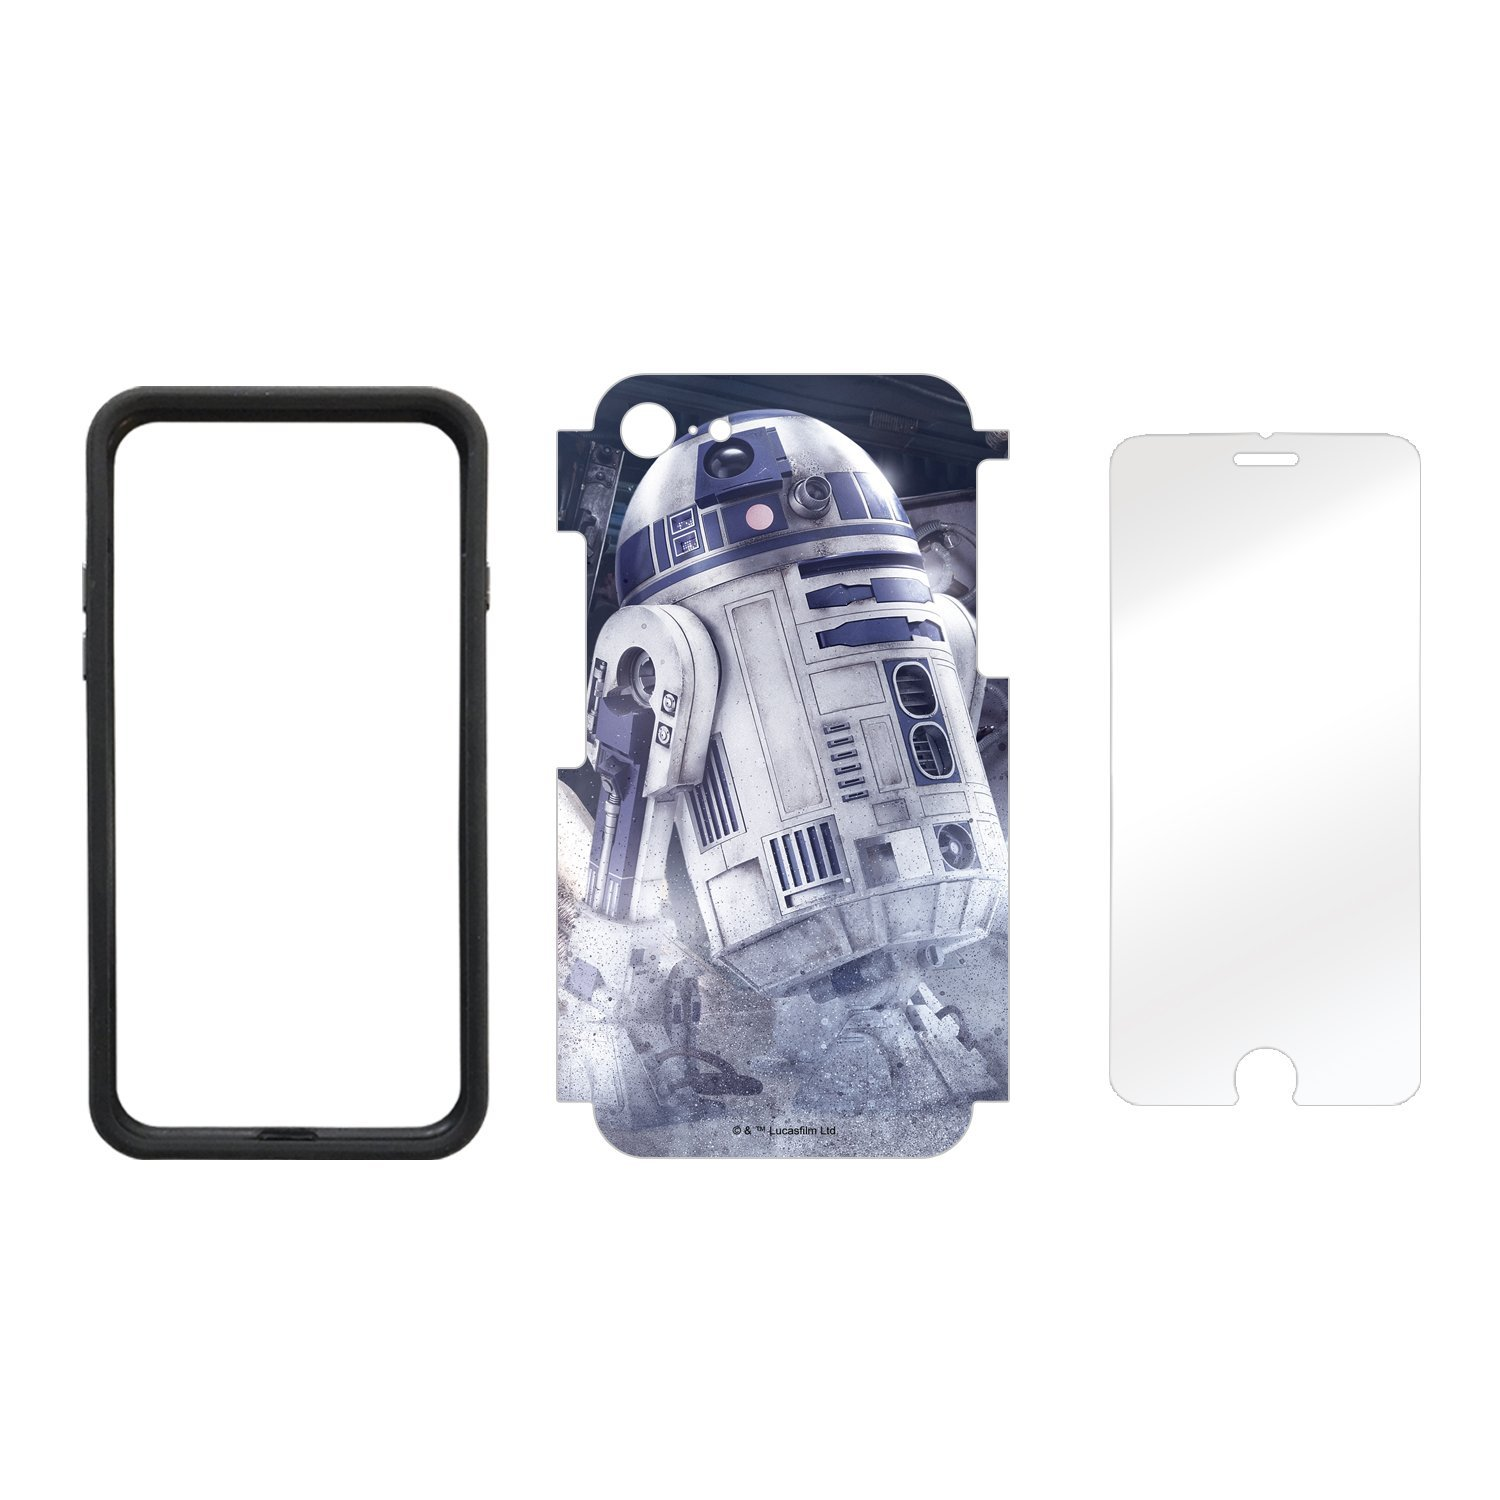 TLJ R2-D2 Astromech Droid iPhone 7 & 8 Wrap Kit 2